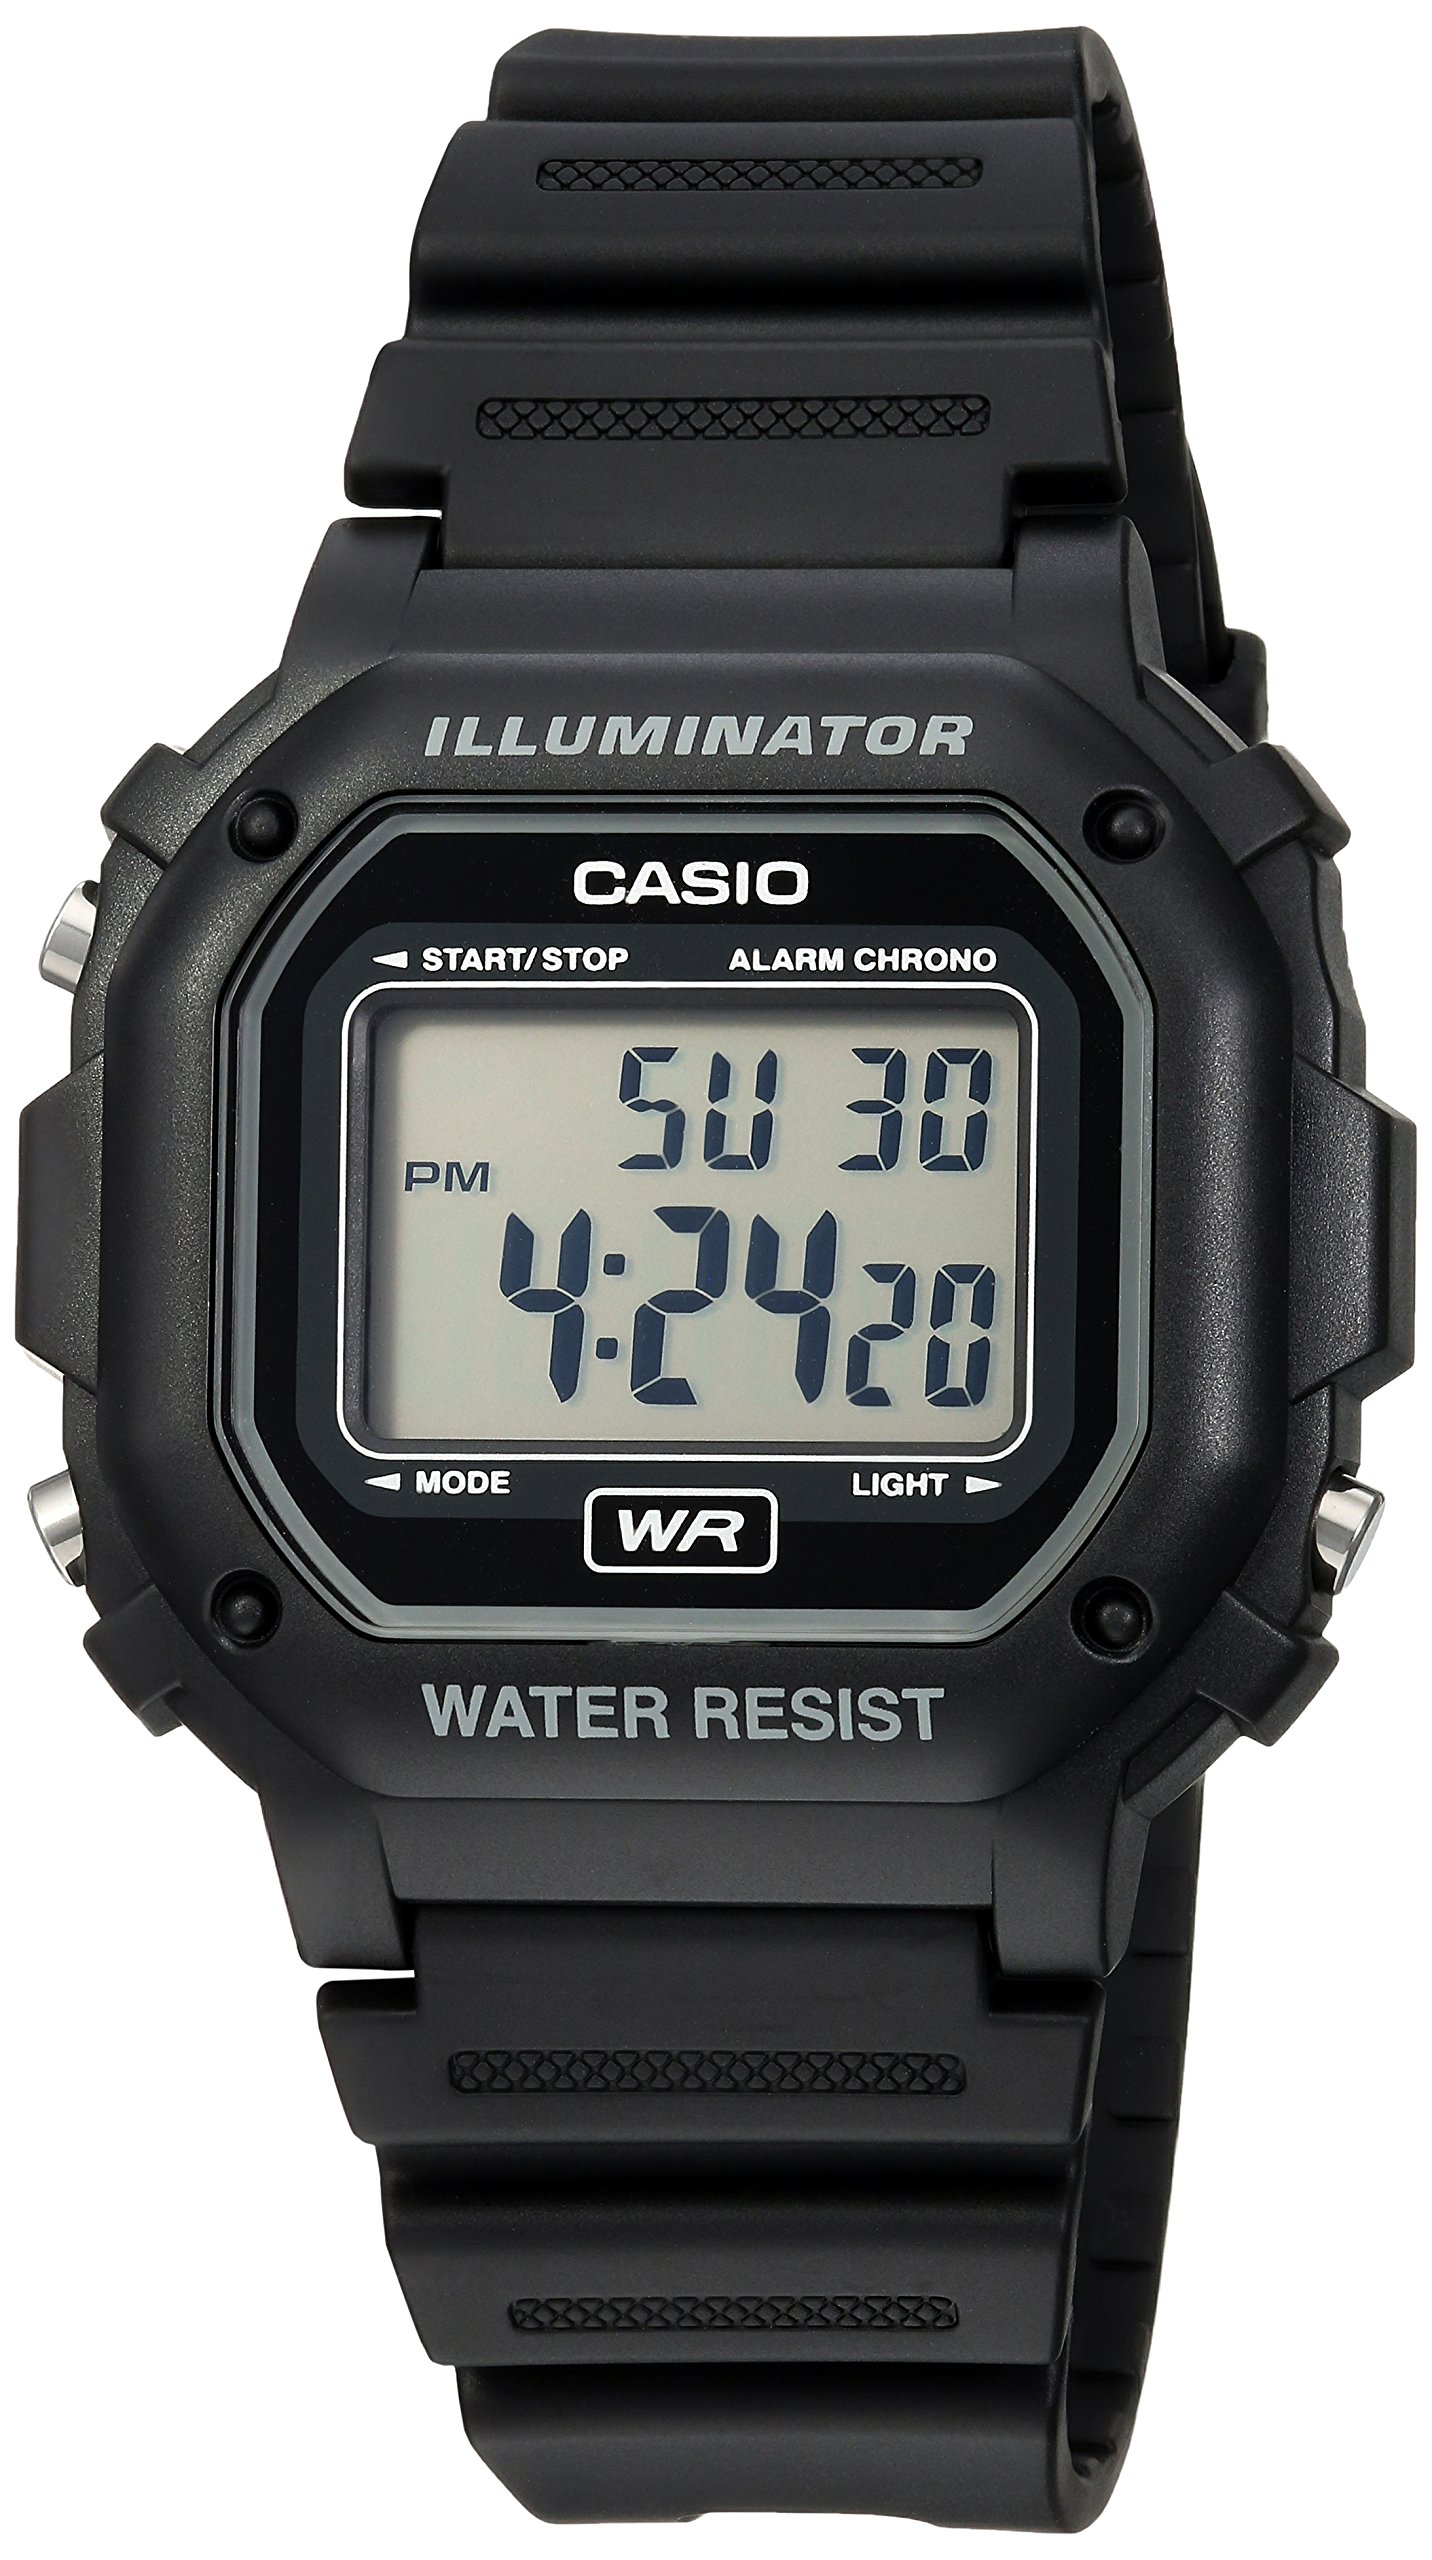 Casio Men's Classic Digital Resin Watch Black F108WH-1 product image